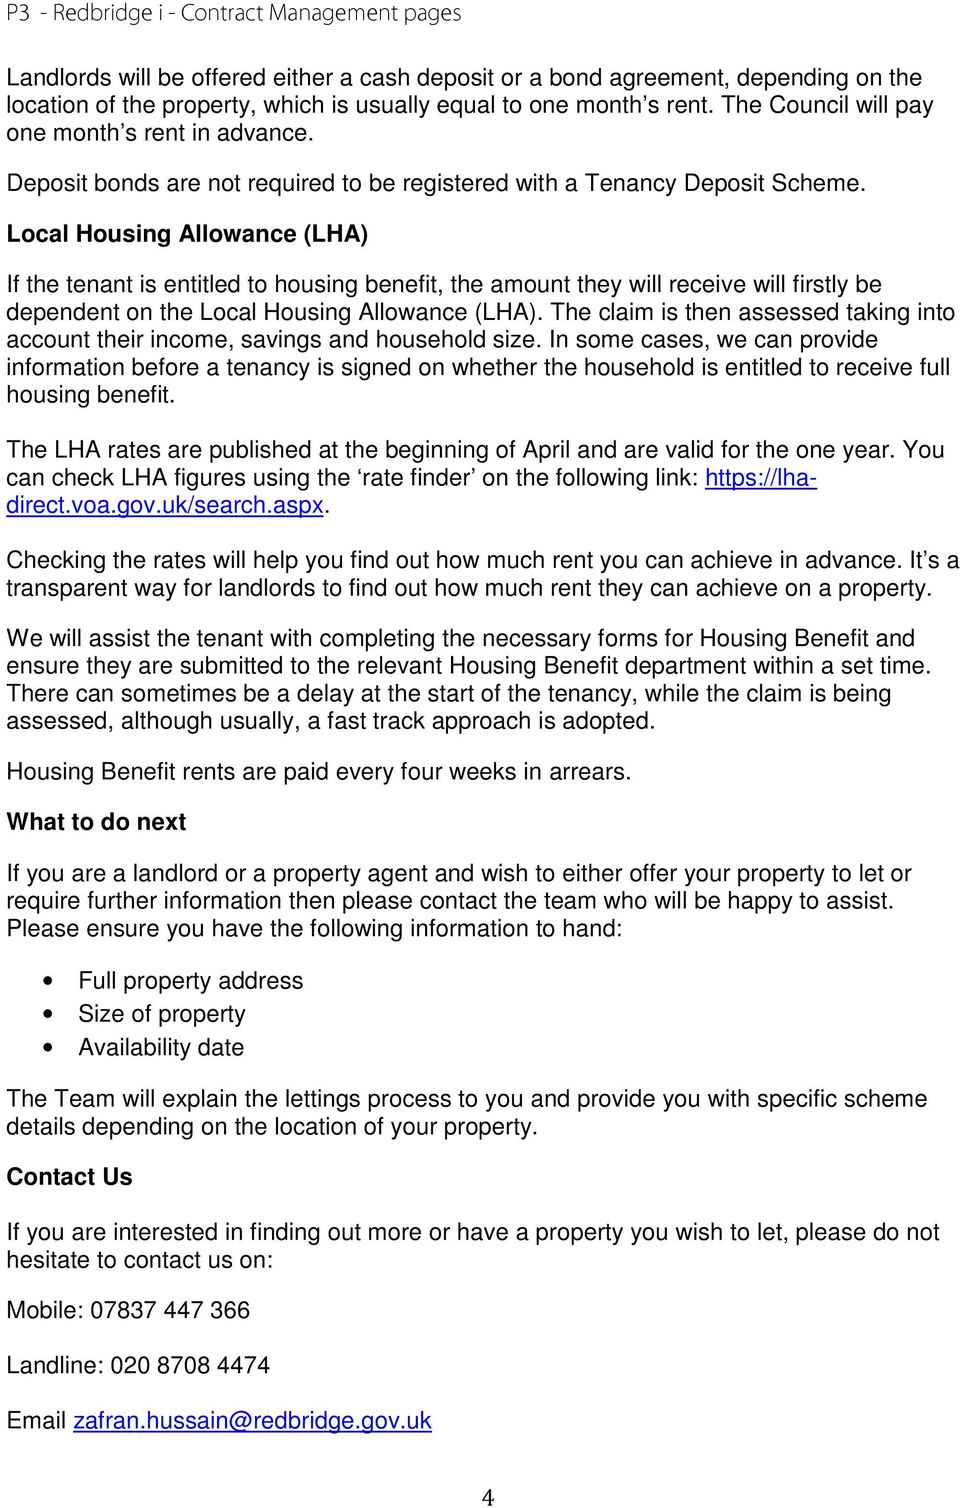 Local Housing Allowance (LHA) If the tenant is entitled to housing benefit, the amount they will receive will firstly be dependent on the Local Housing Allowance (LHA).